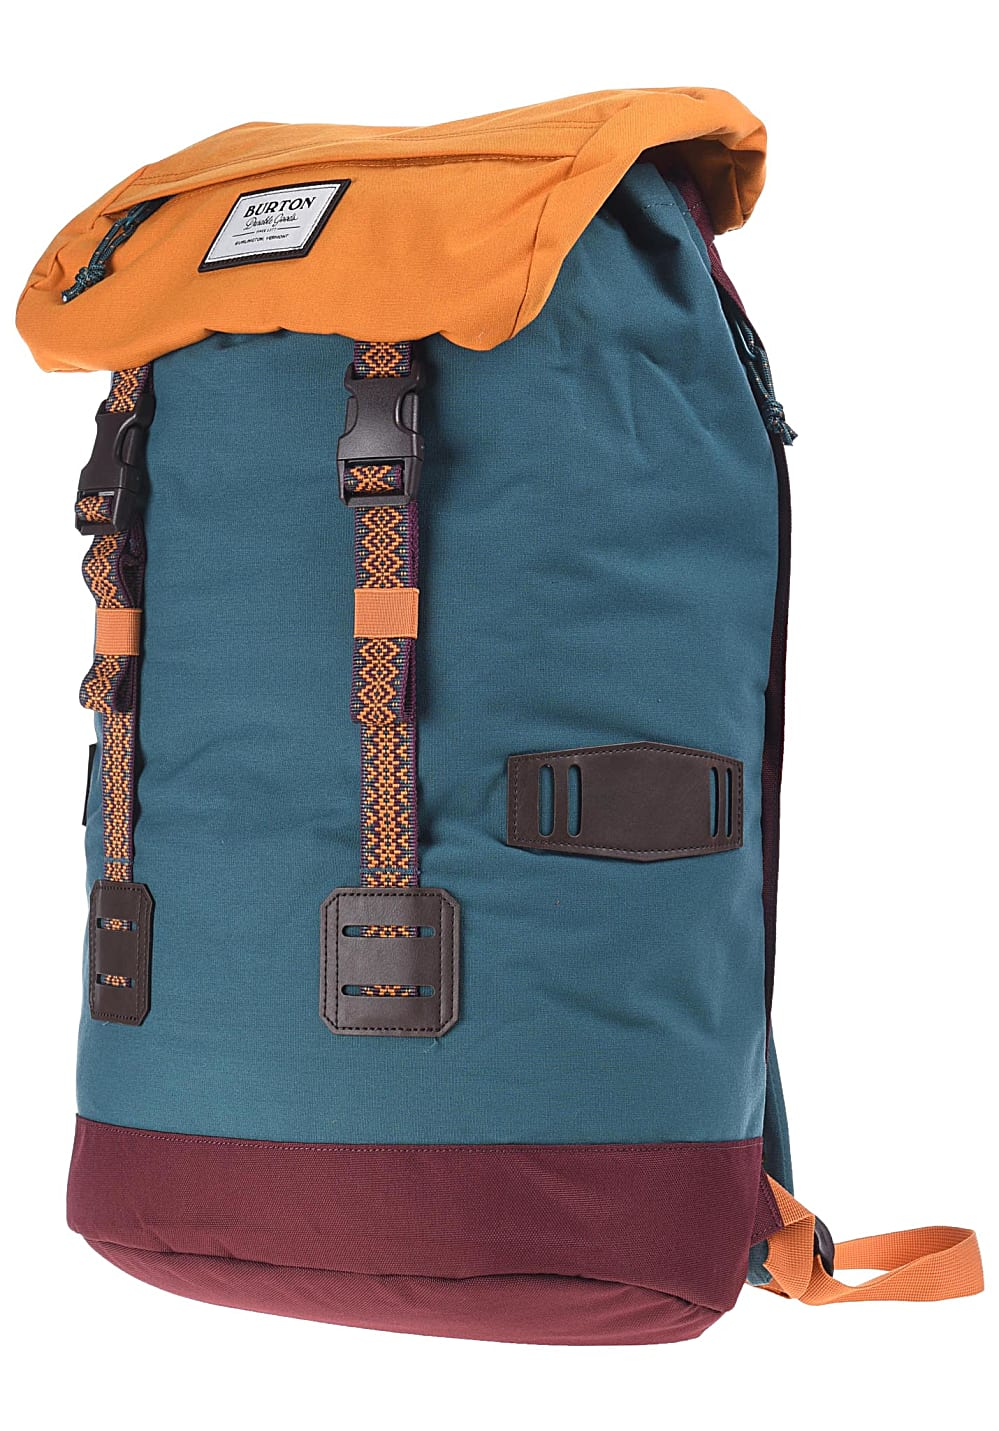 4c615ed697 Burton Tinder 25L - Backpack - Blue - Planet Sports